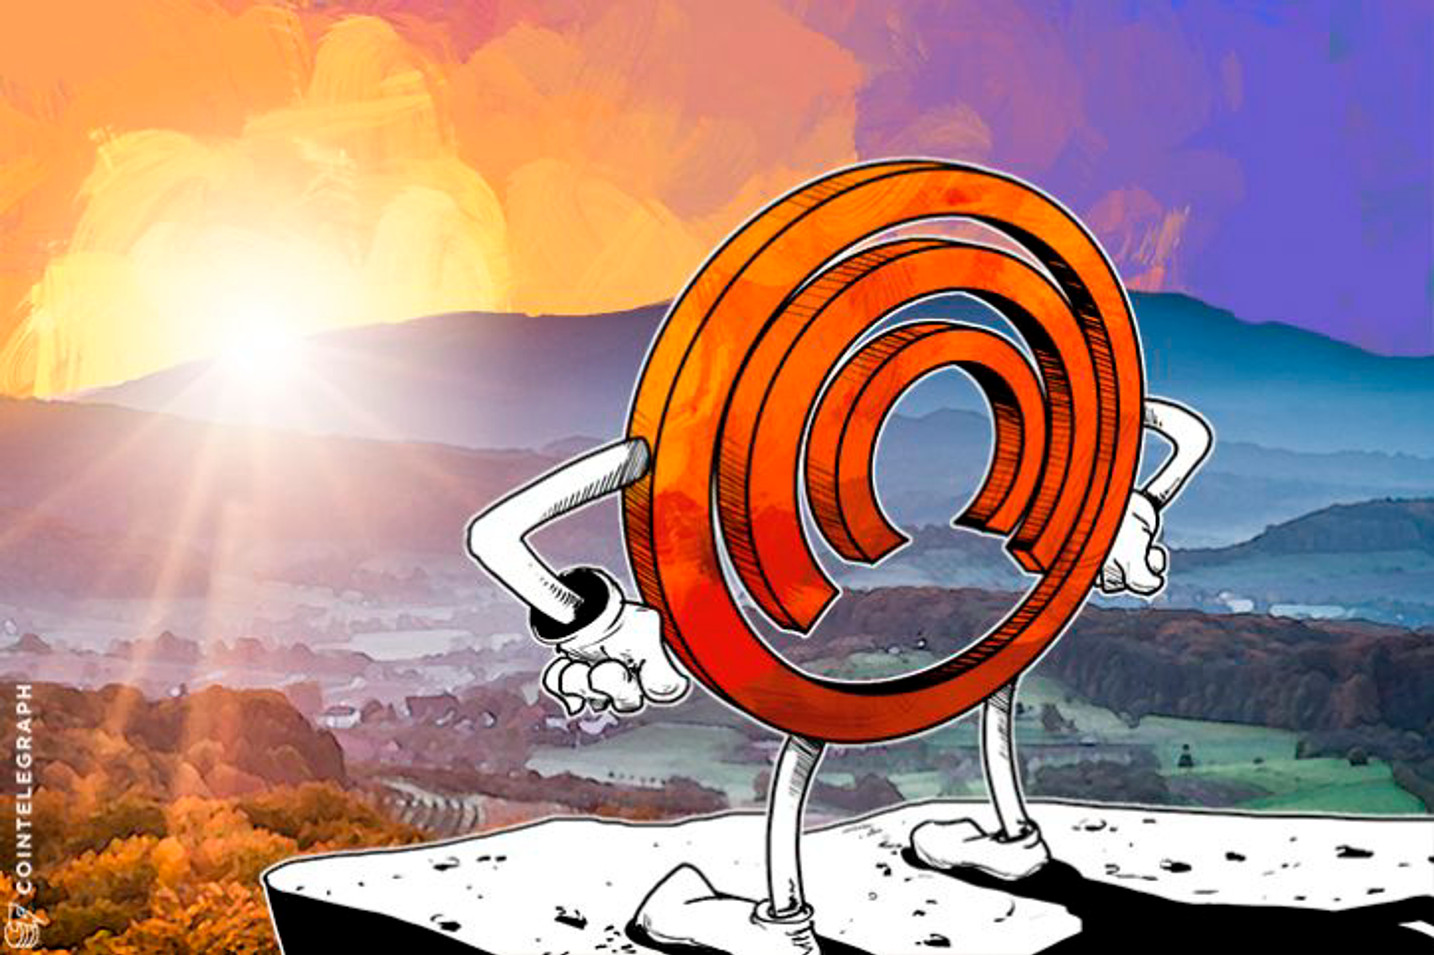 CloakCoin: 'We Had to Do Everything from Scratch, Only the Name Has Stuck'